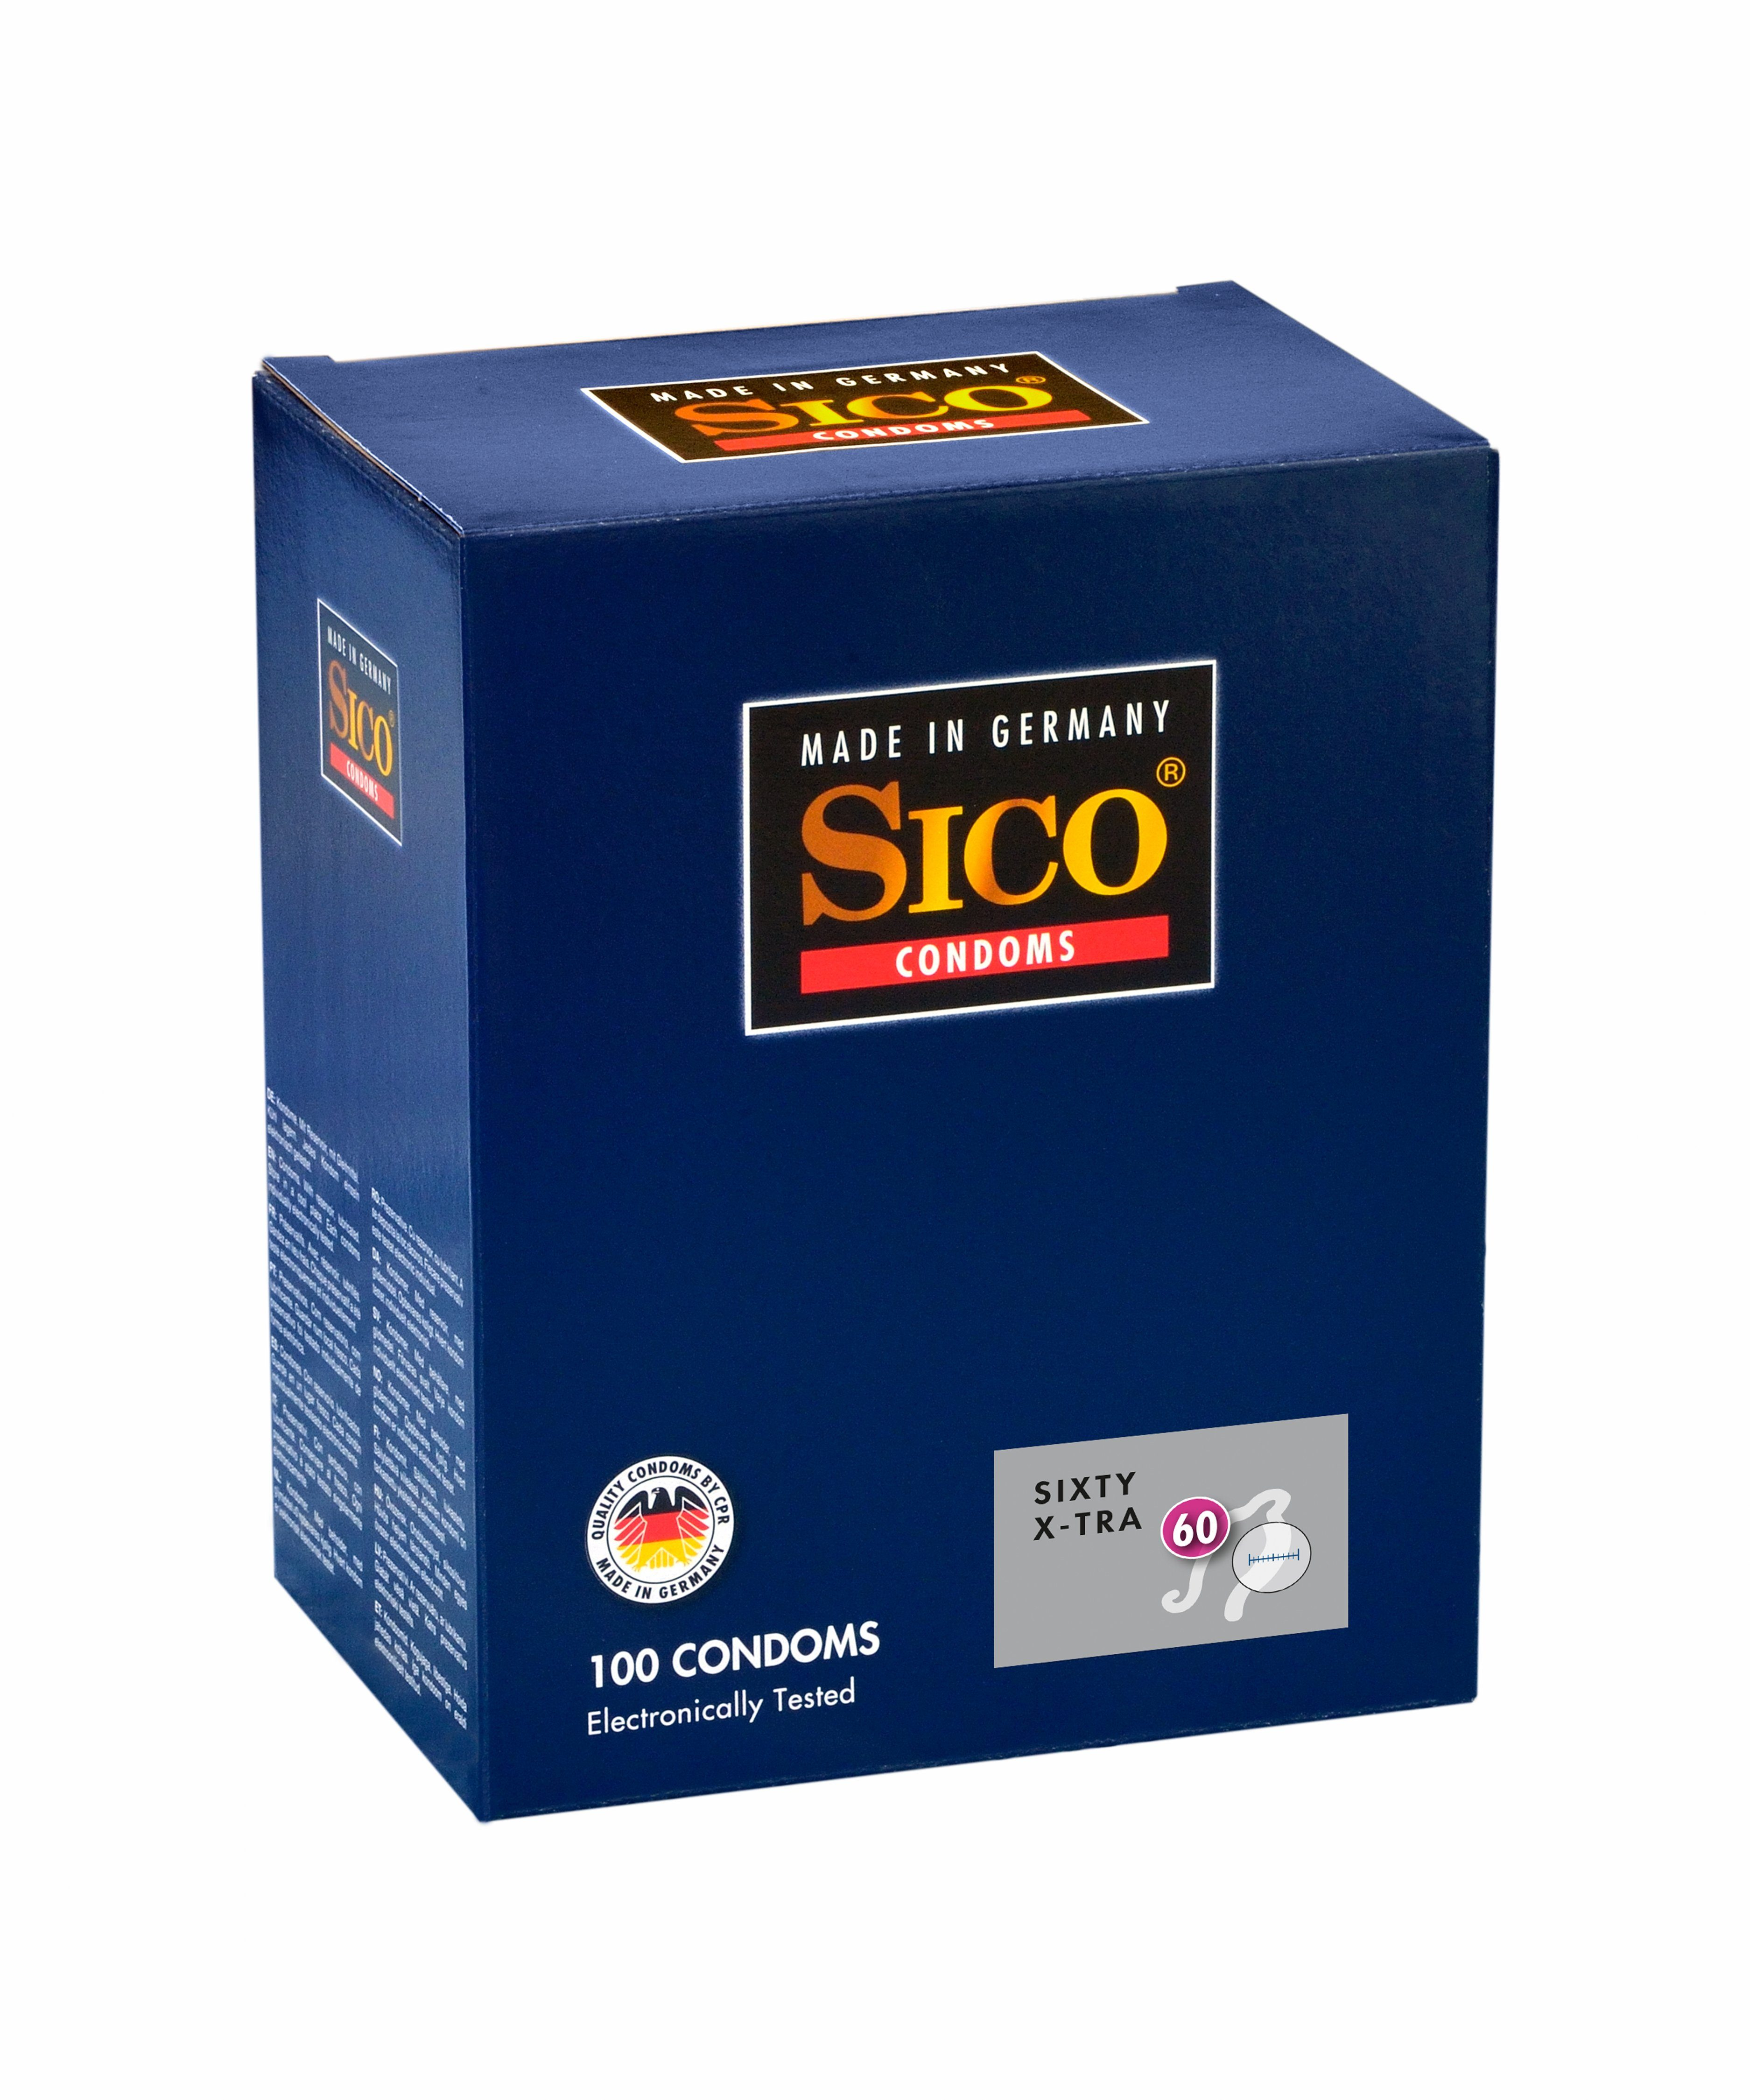 SICO Size X-tra Kondome made in Germany »Size X-tra 60, 100er Box«